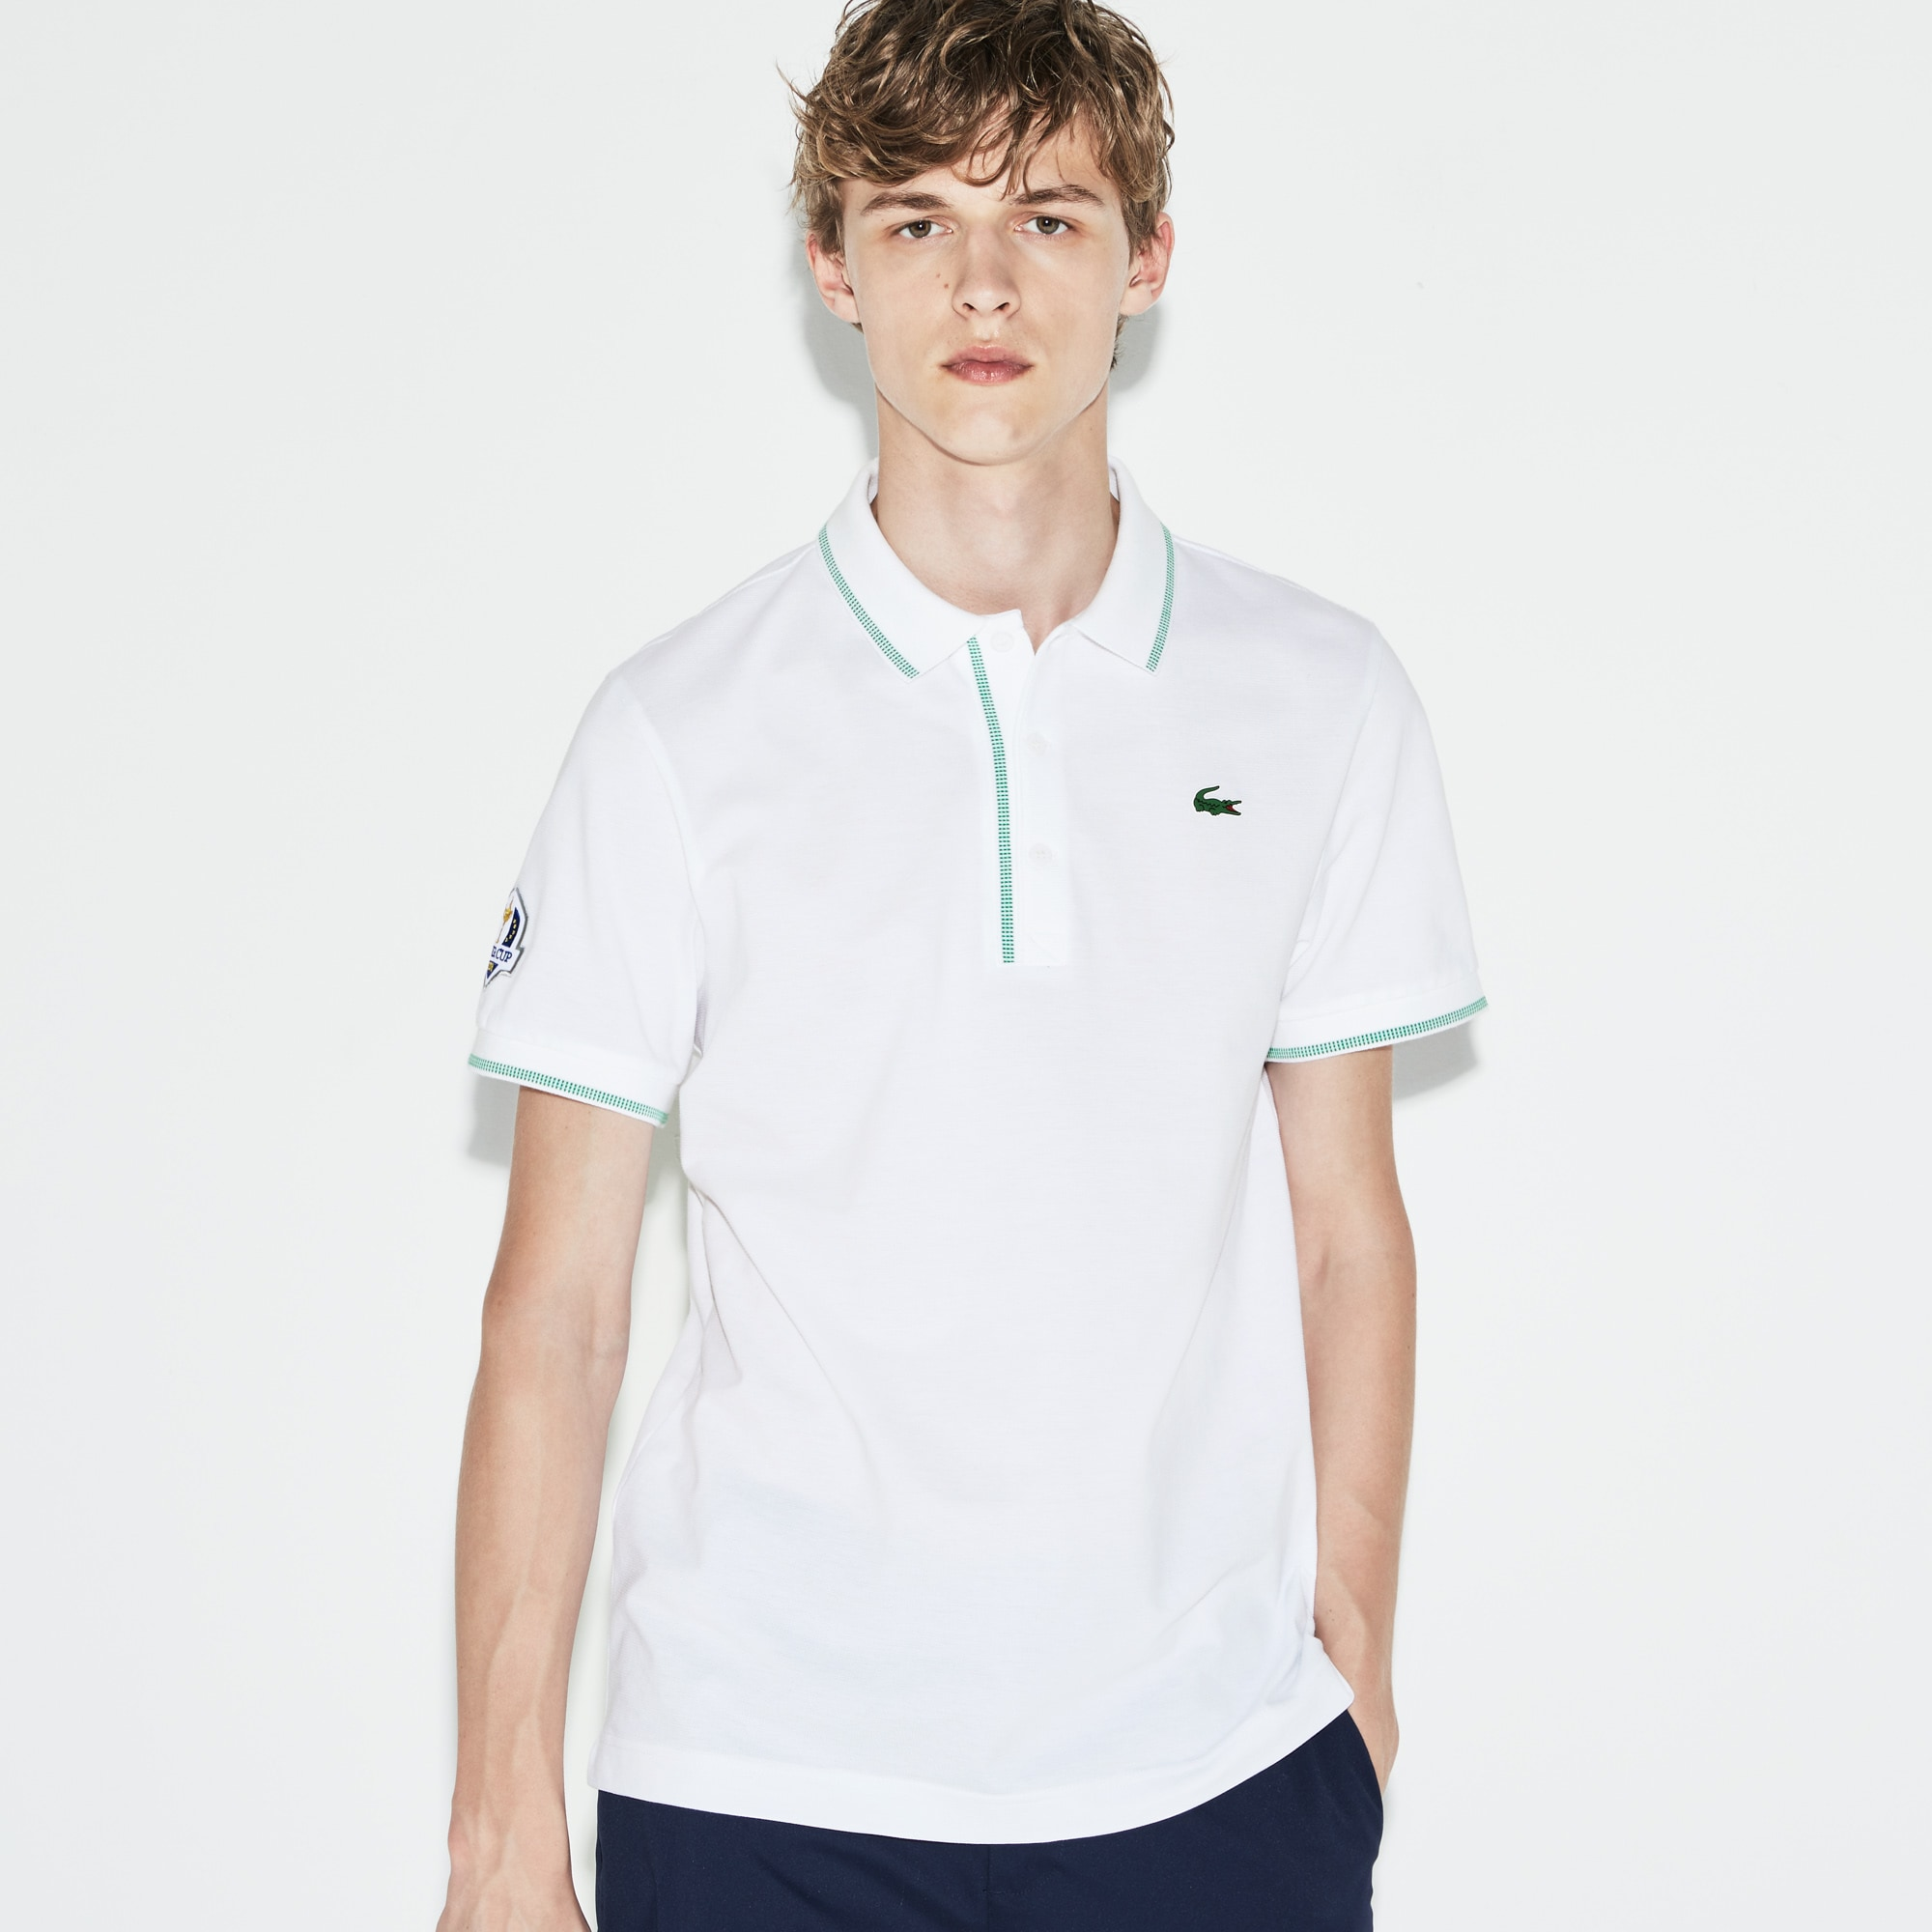 Men's Lacoste SPORT Ryder Cup Edition Piped Cotton Golf Polo...